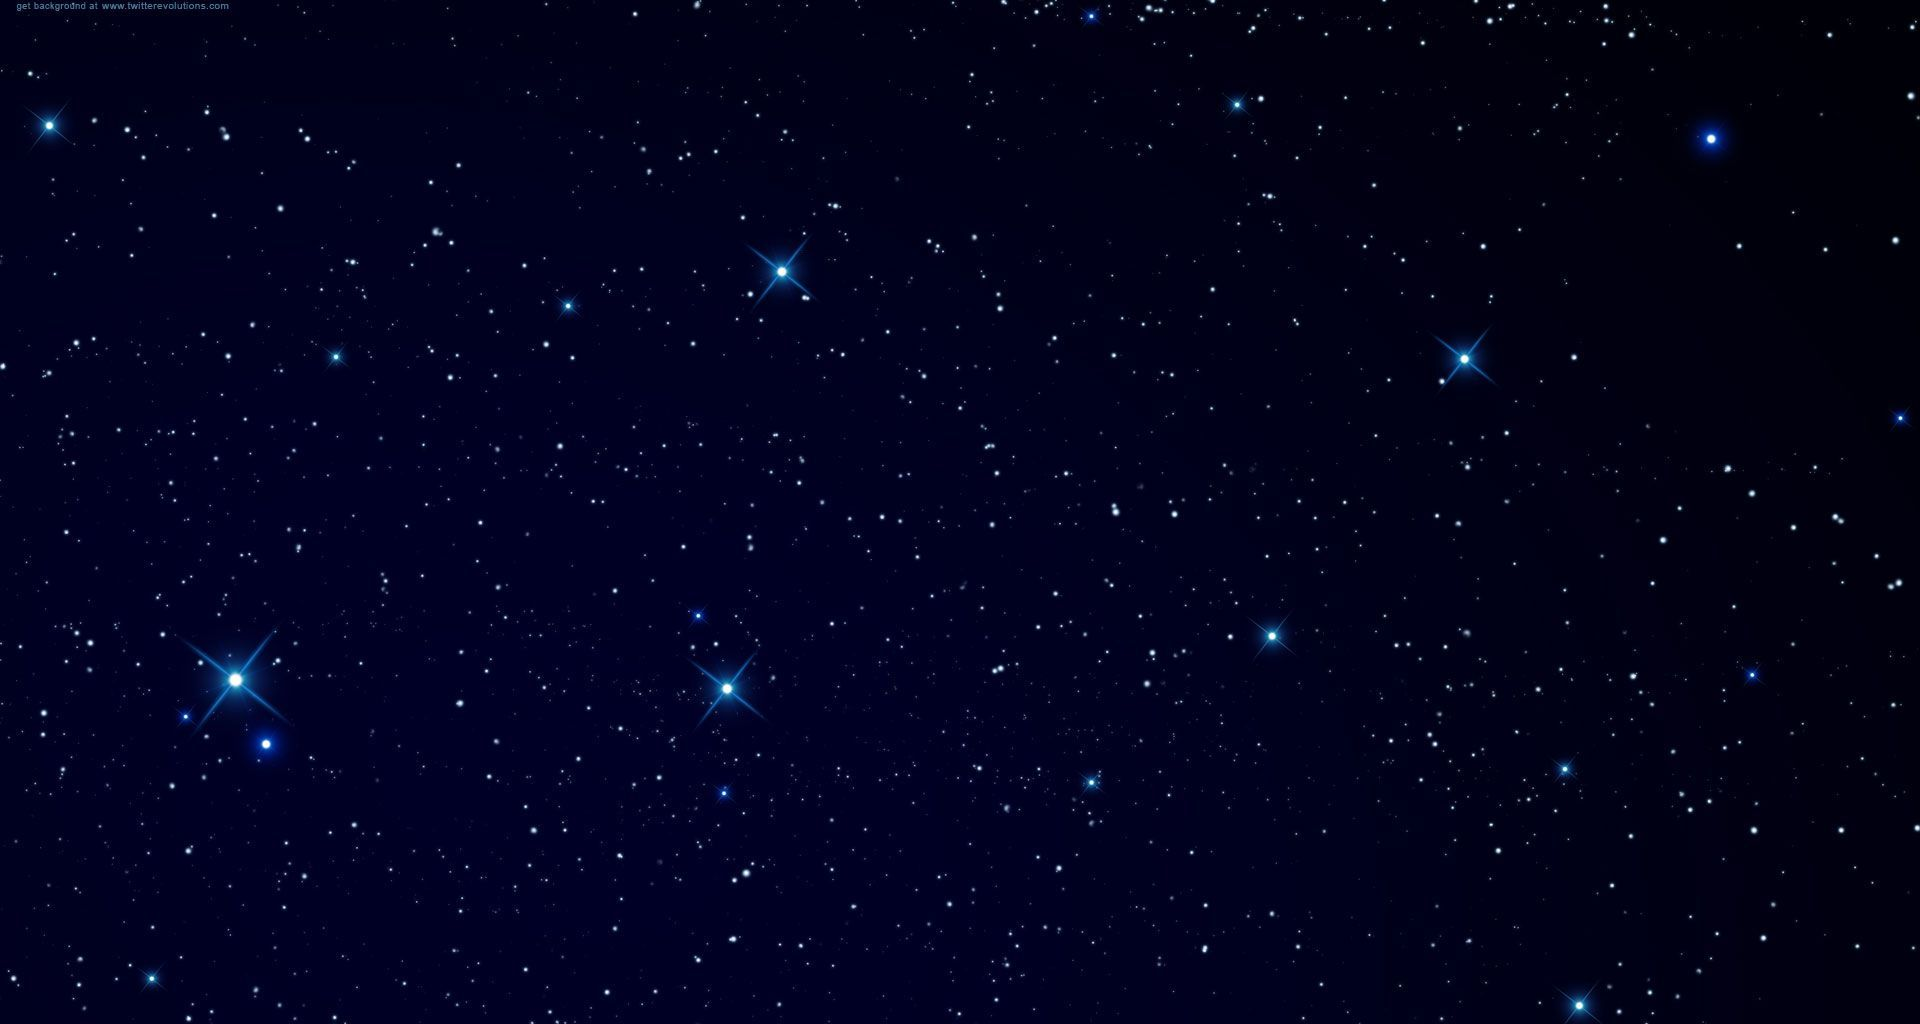 Ipgsdfe Jpg 1920 1024 Star Wallpaper Space Backgrounds Star Background